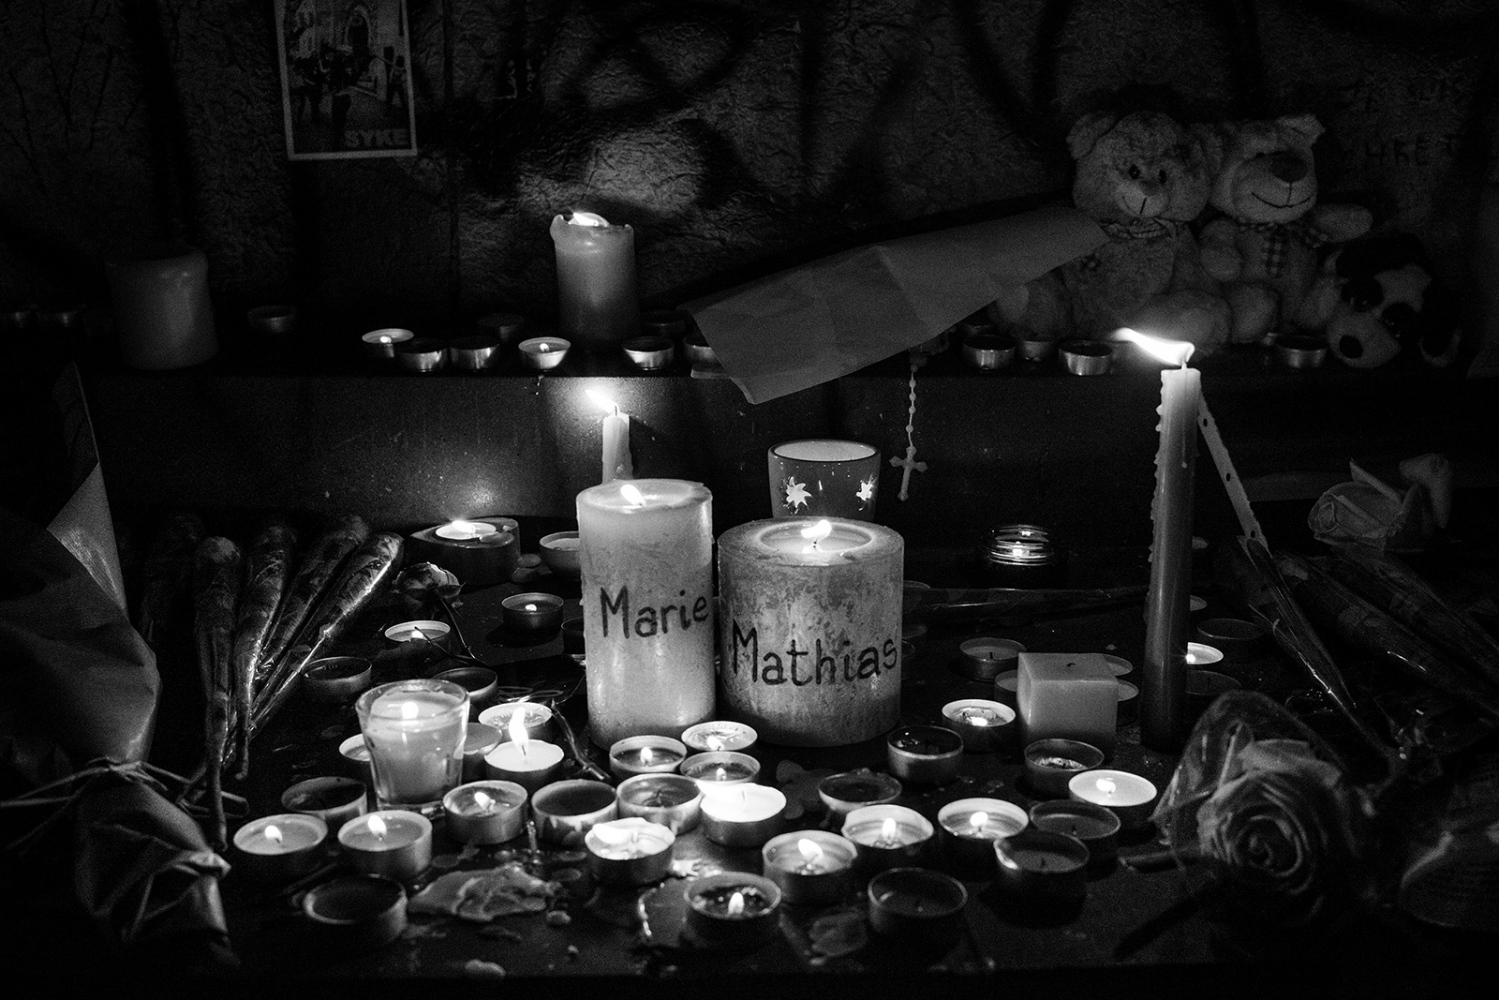 Lighted candles to commemorate Mathias Dymarski, 22, and Marie Lausch, 23, died together in the attack at the Bataclan theatre. Paris, France, Place de la Republique. 14/11/2015. The aftermath of the terrorism attacks in Paris on 13/11/2015.